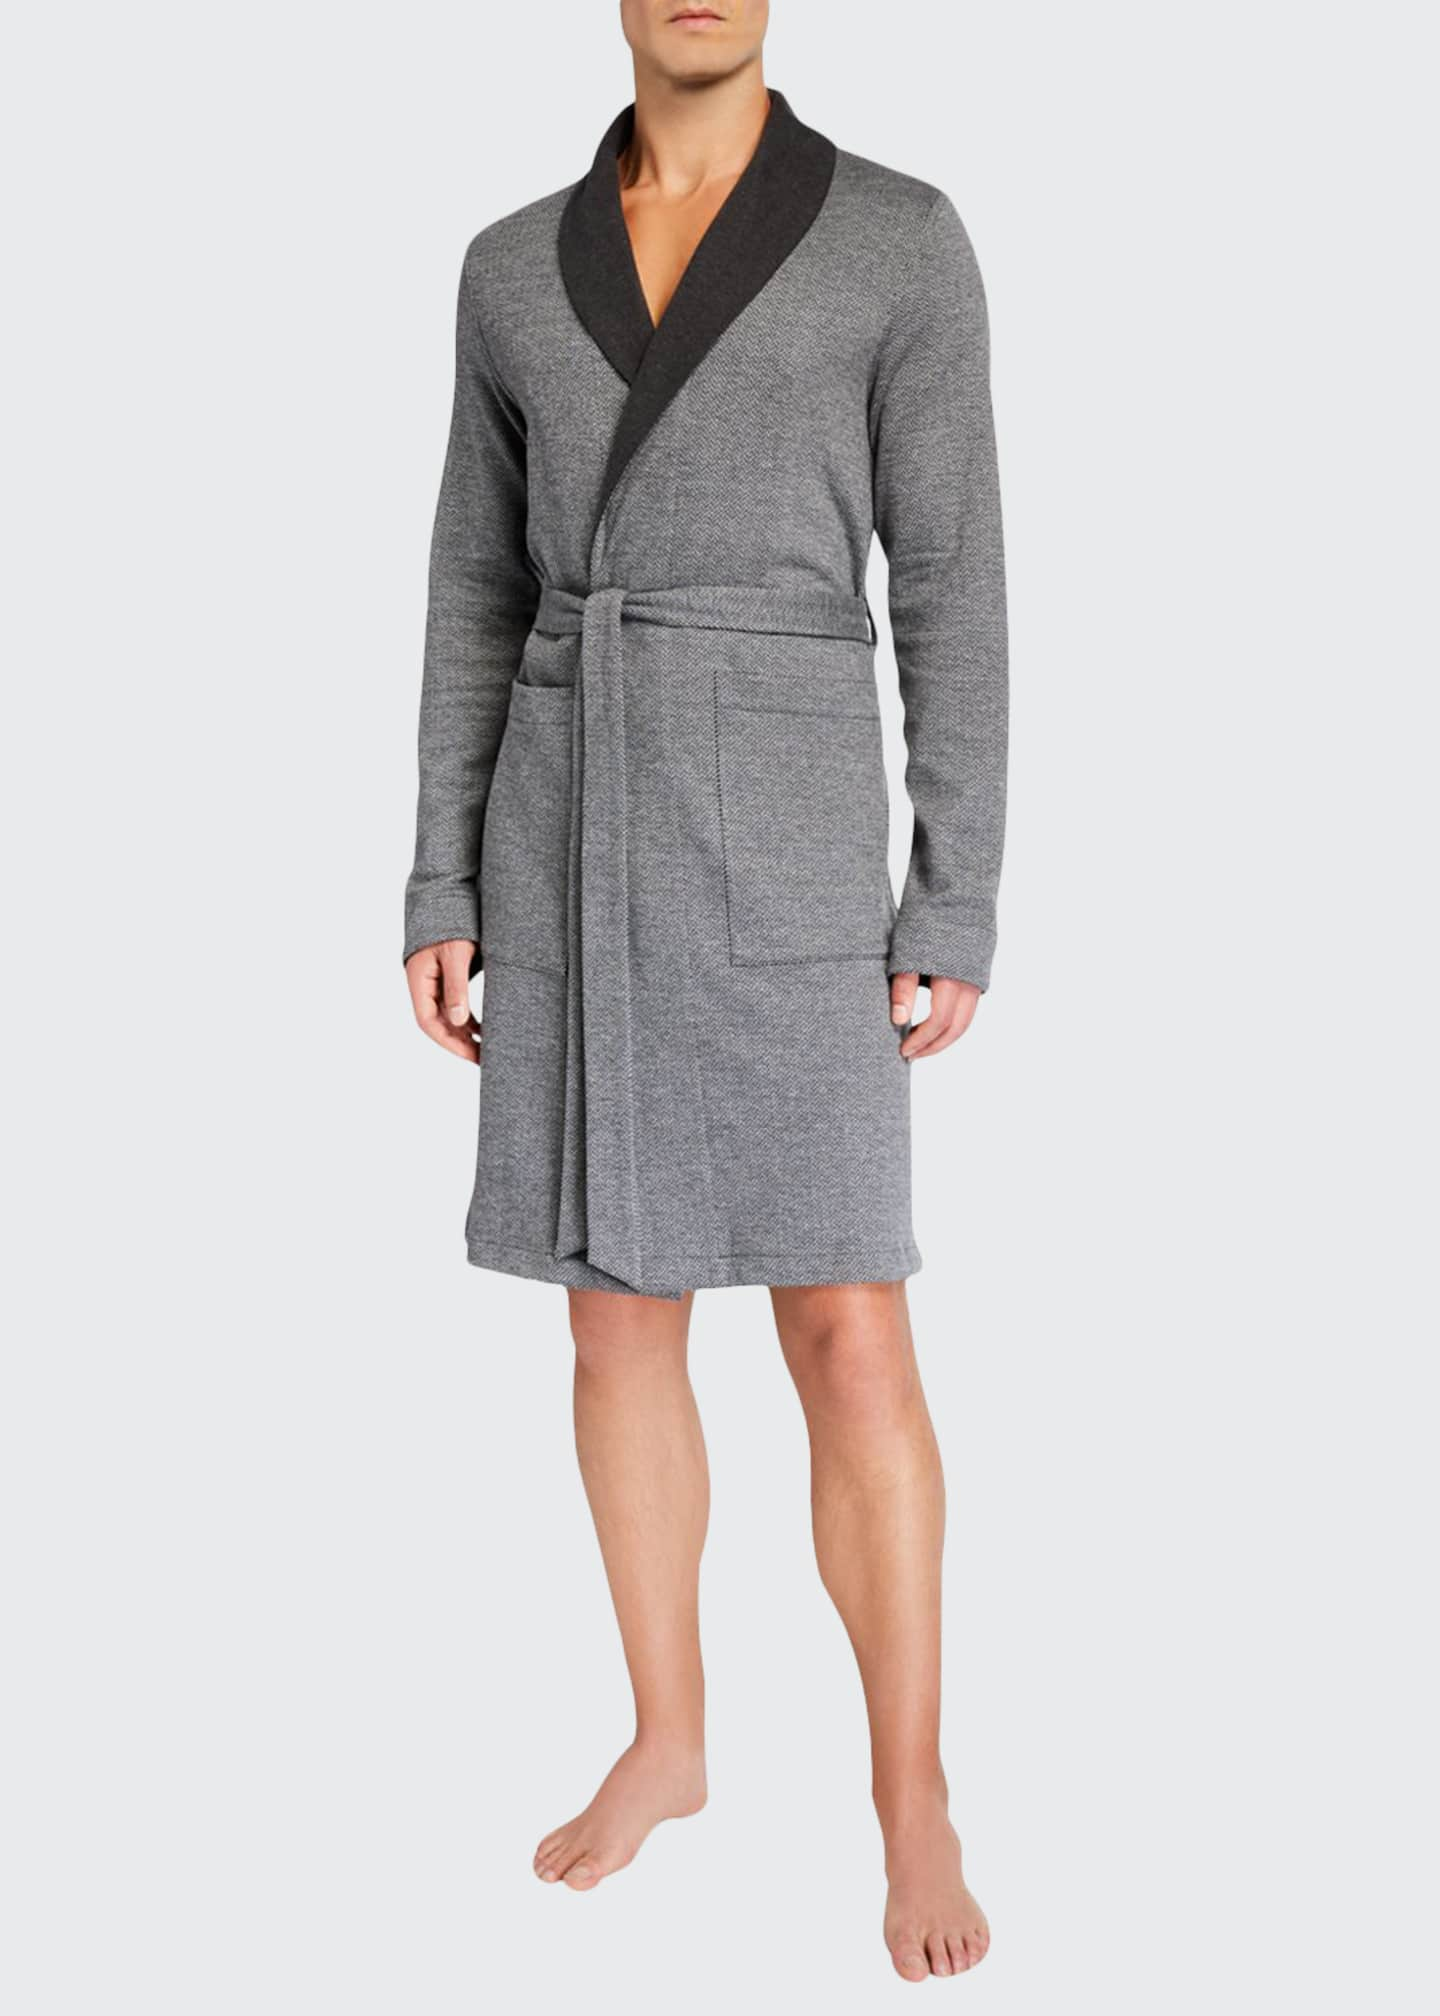 Hanro Cotton/Wool Interlock Robe